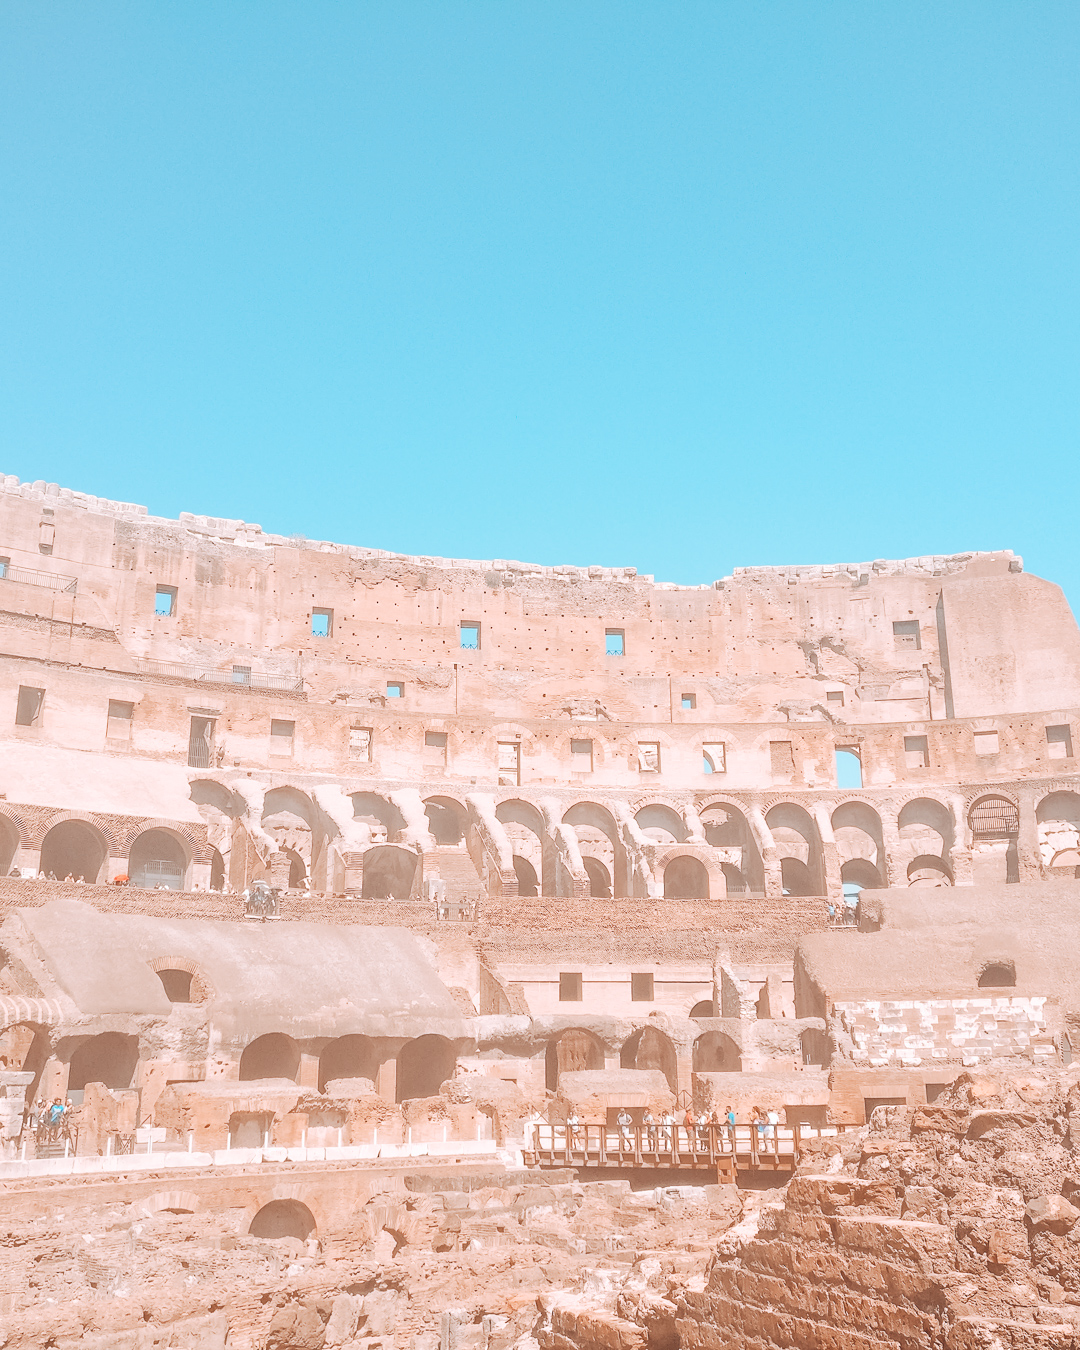 The Colosseum from the inside